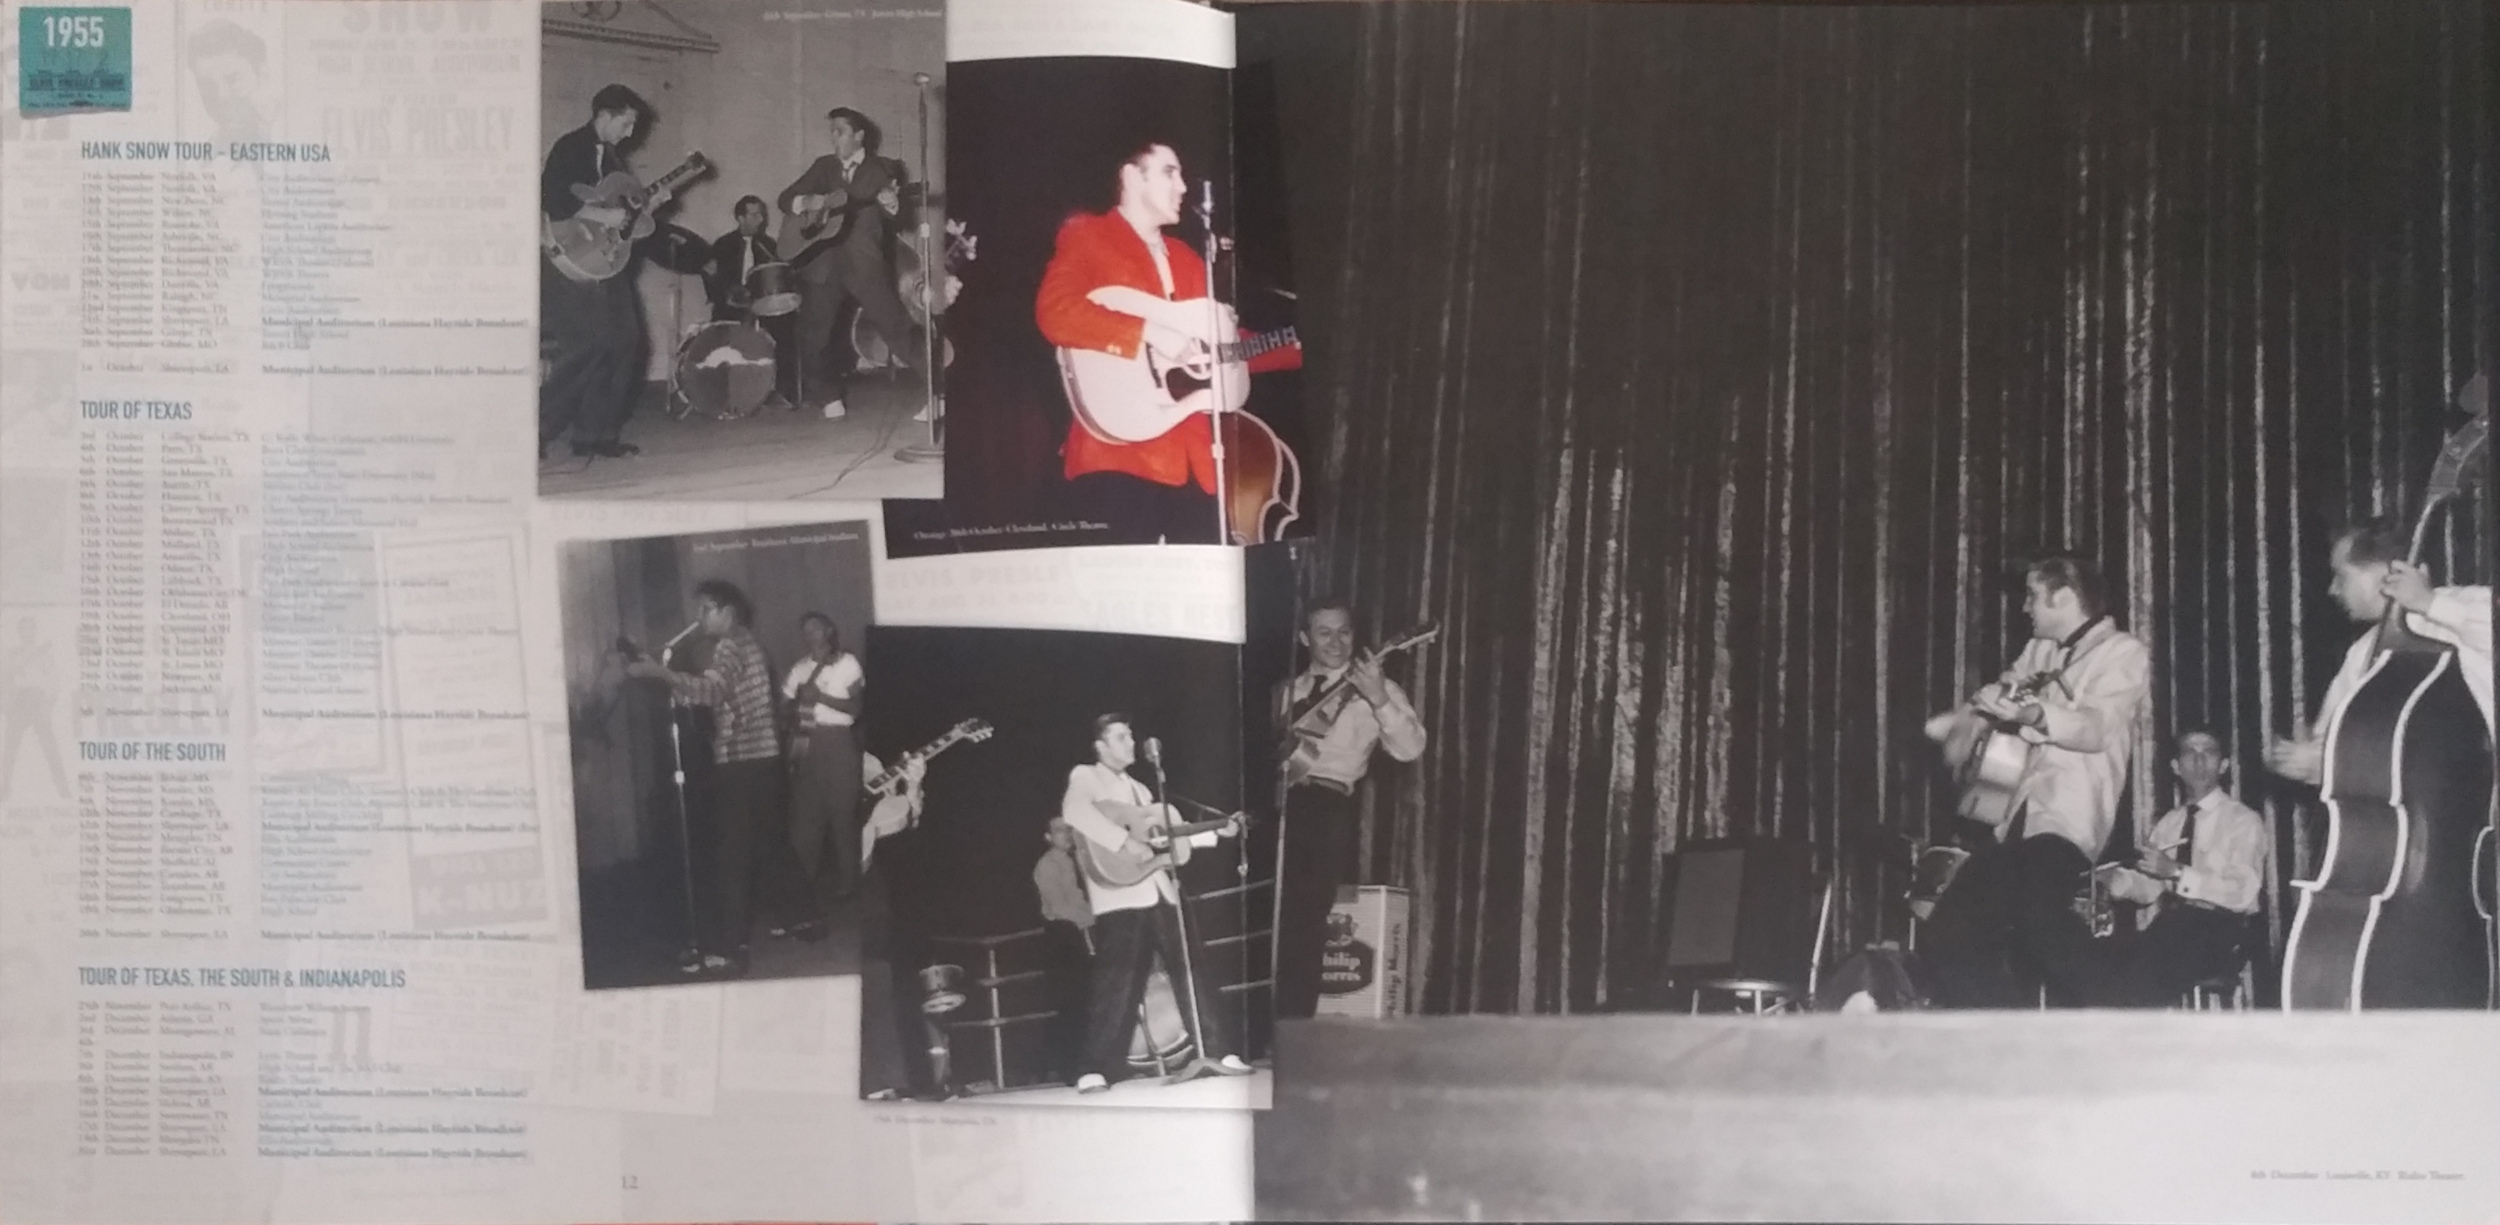 LIVE IN THE 50's (The Complete Tour Recordings) Liveinthe50s-thecomplunjfc